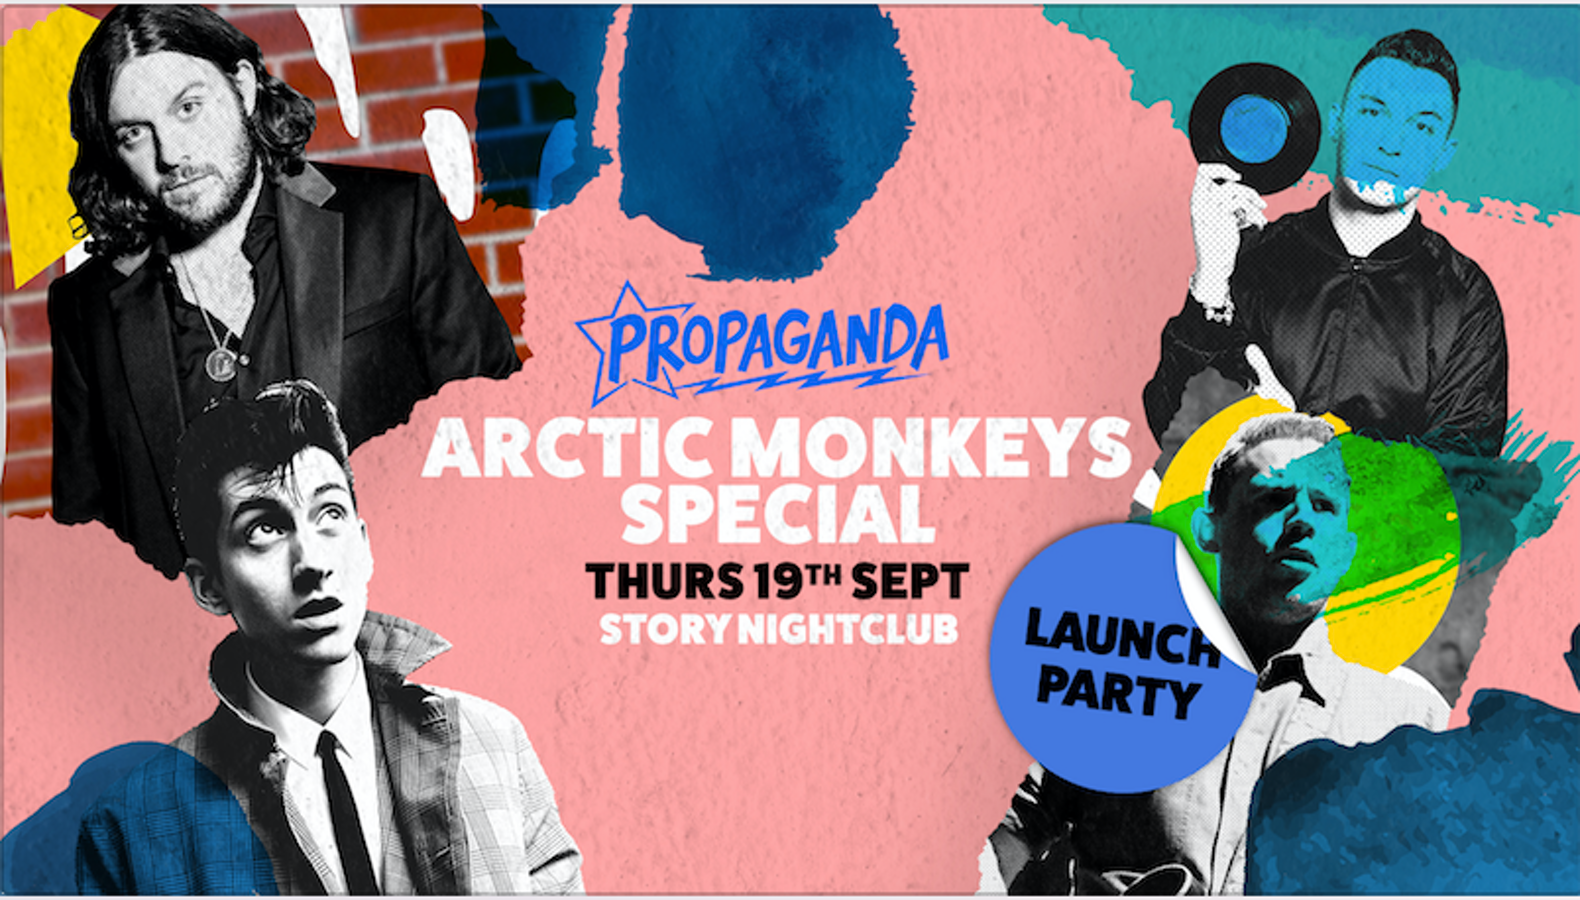 Propaganda Cardiff – Launch Party at Story Nightclub: Arctic Monkeys Special!